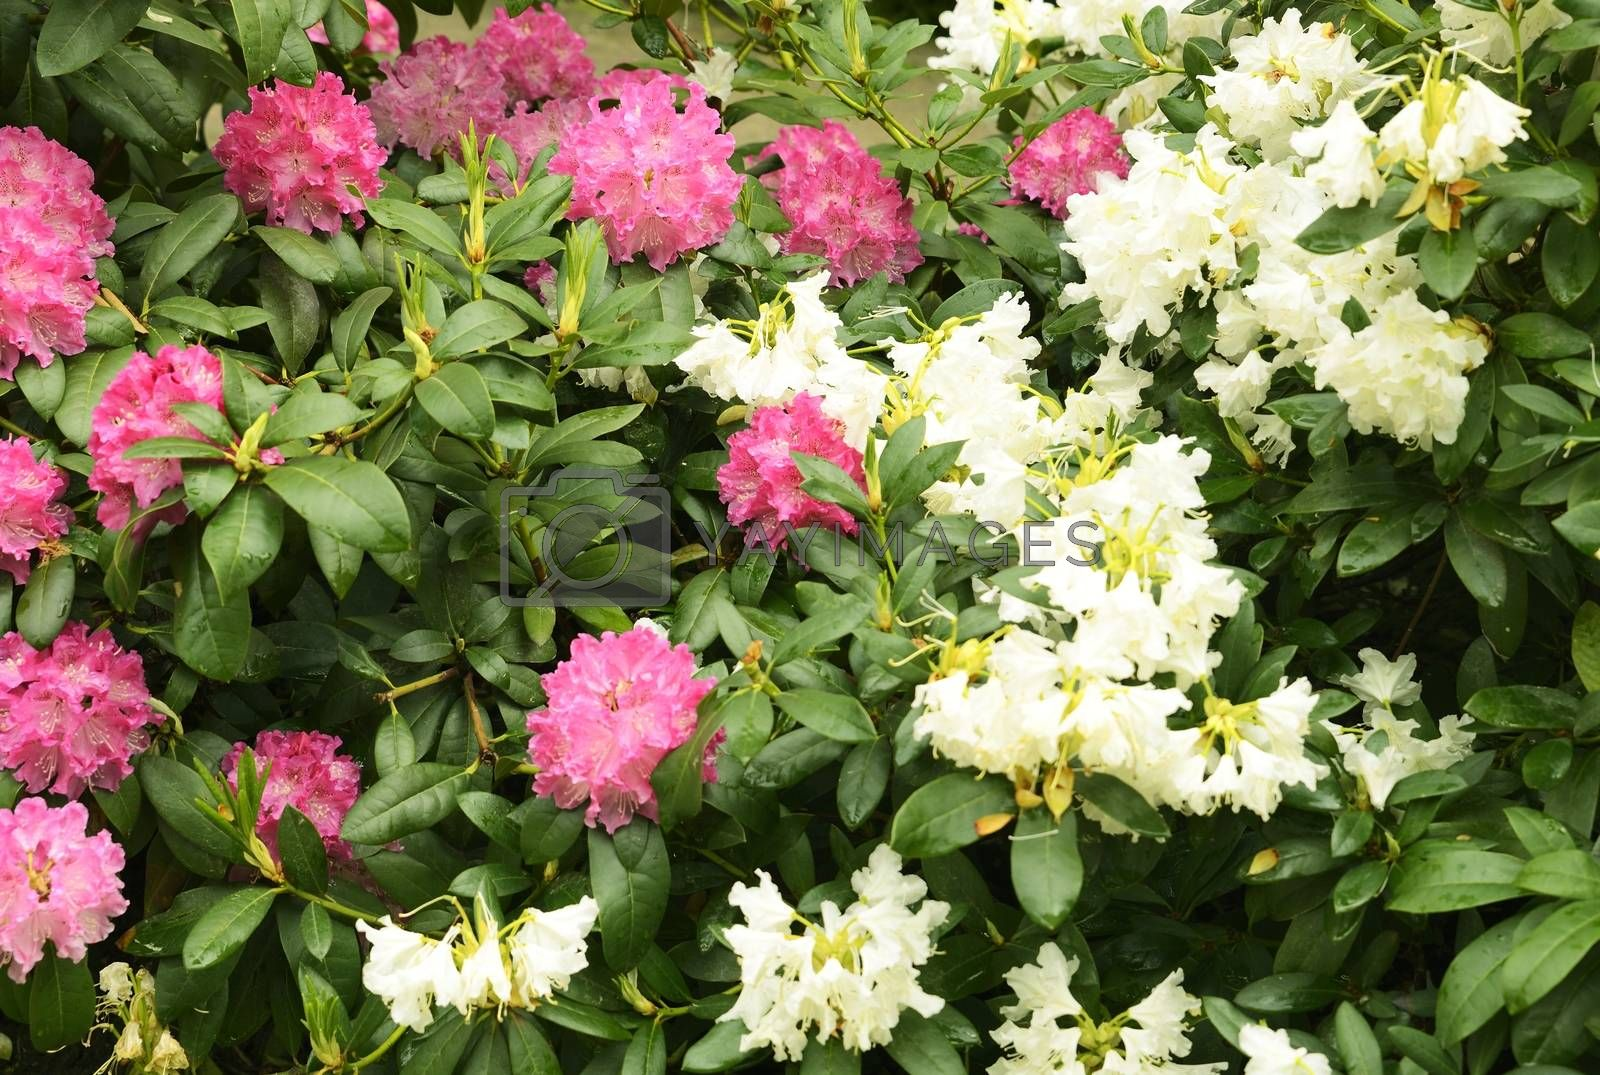 Pink and white Rhododendron flower.